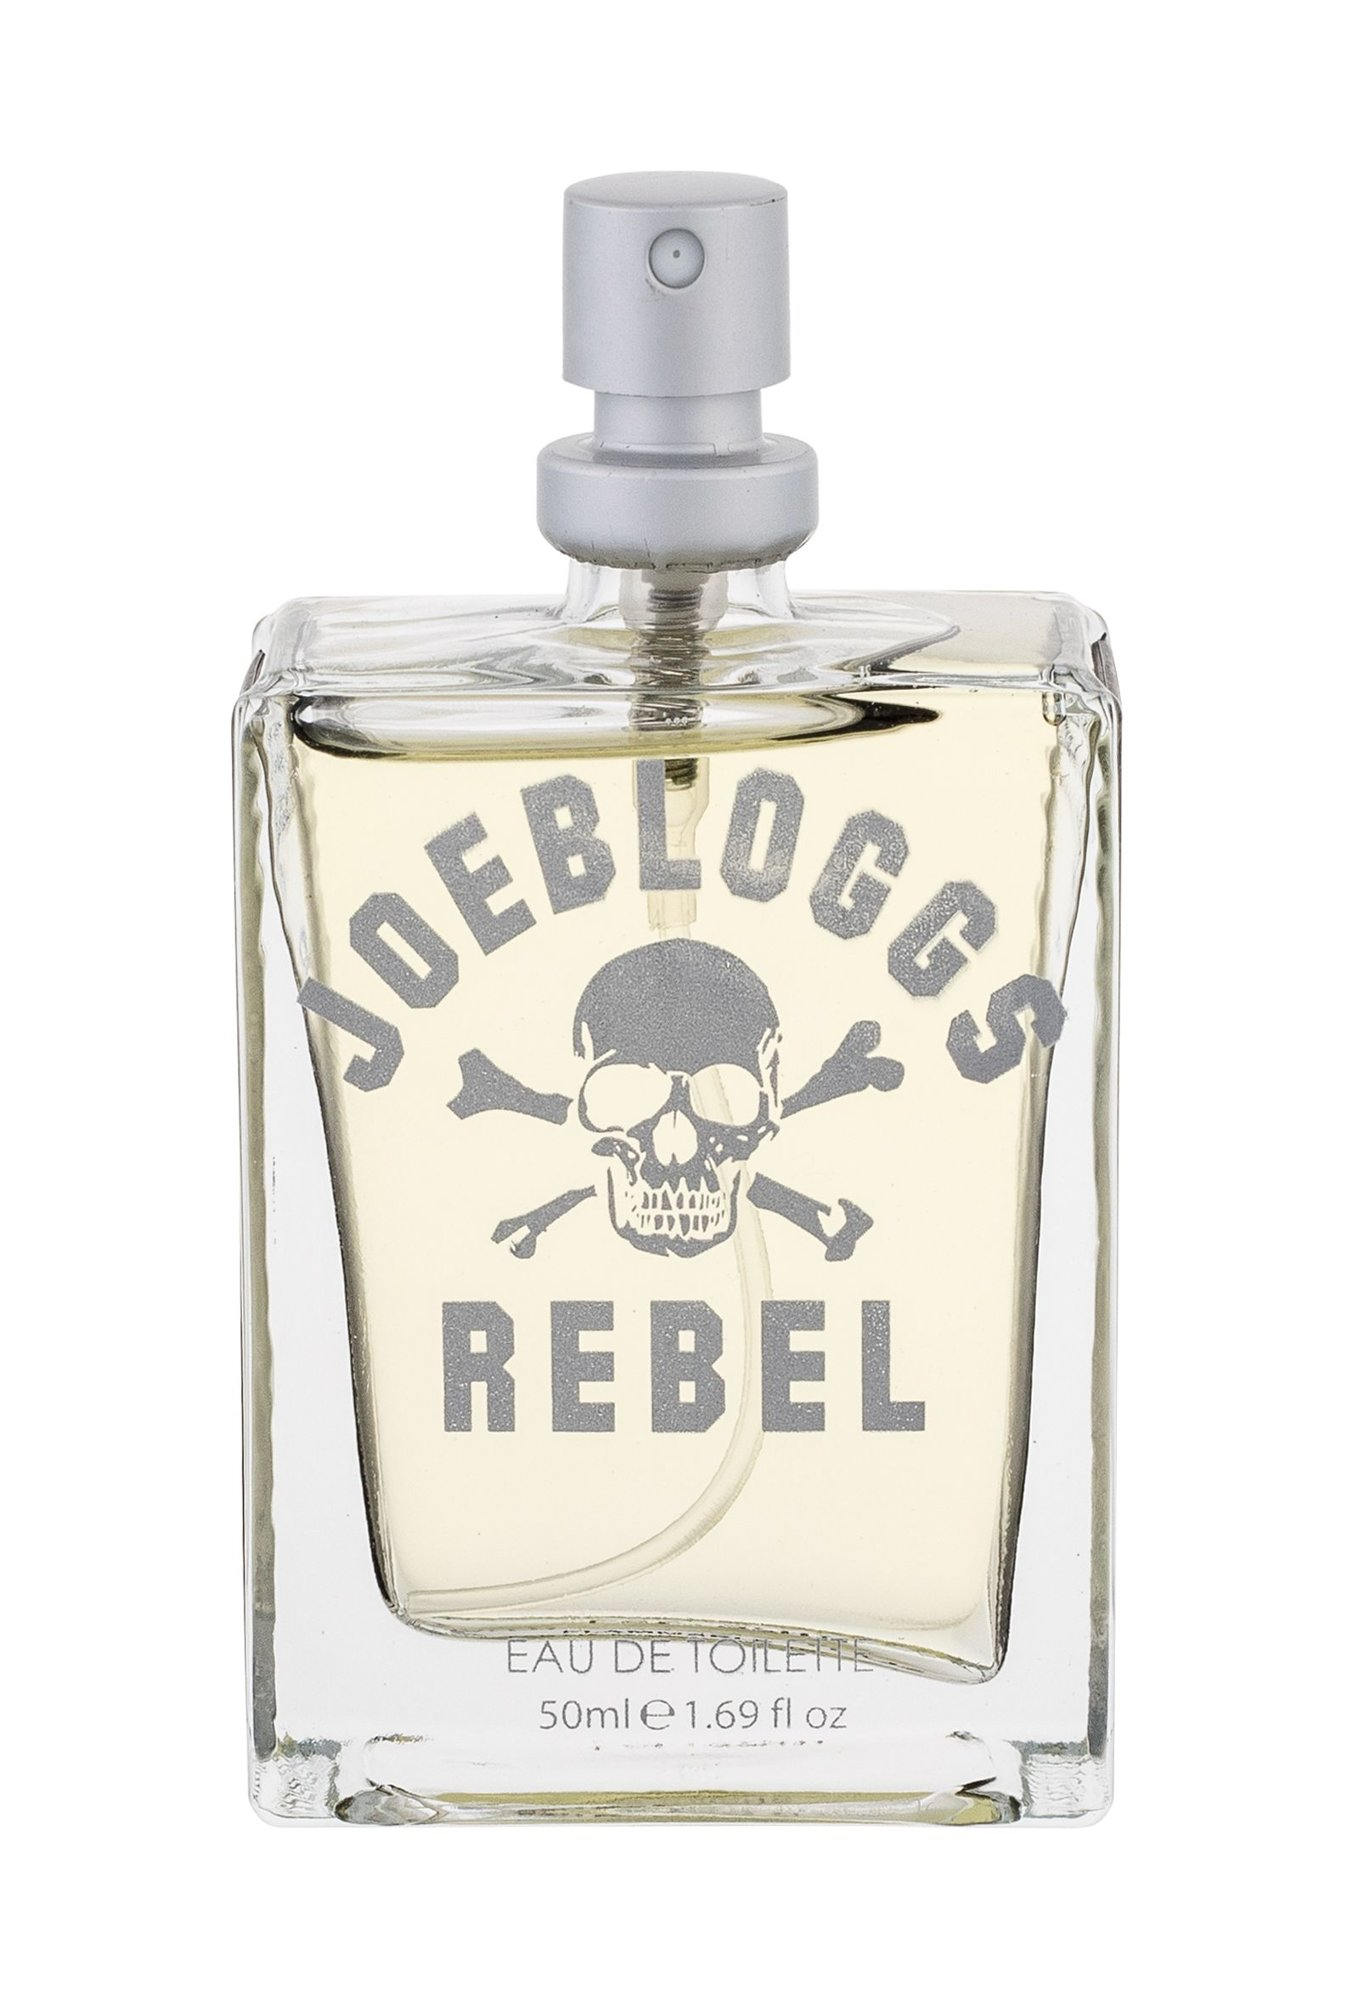 Joe Bloggs Rebel Eau de Toilette 50ml